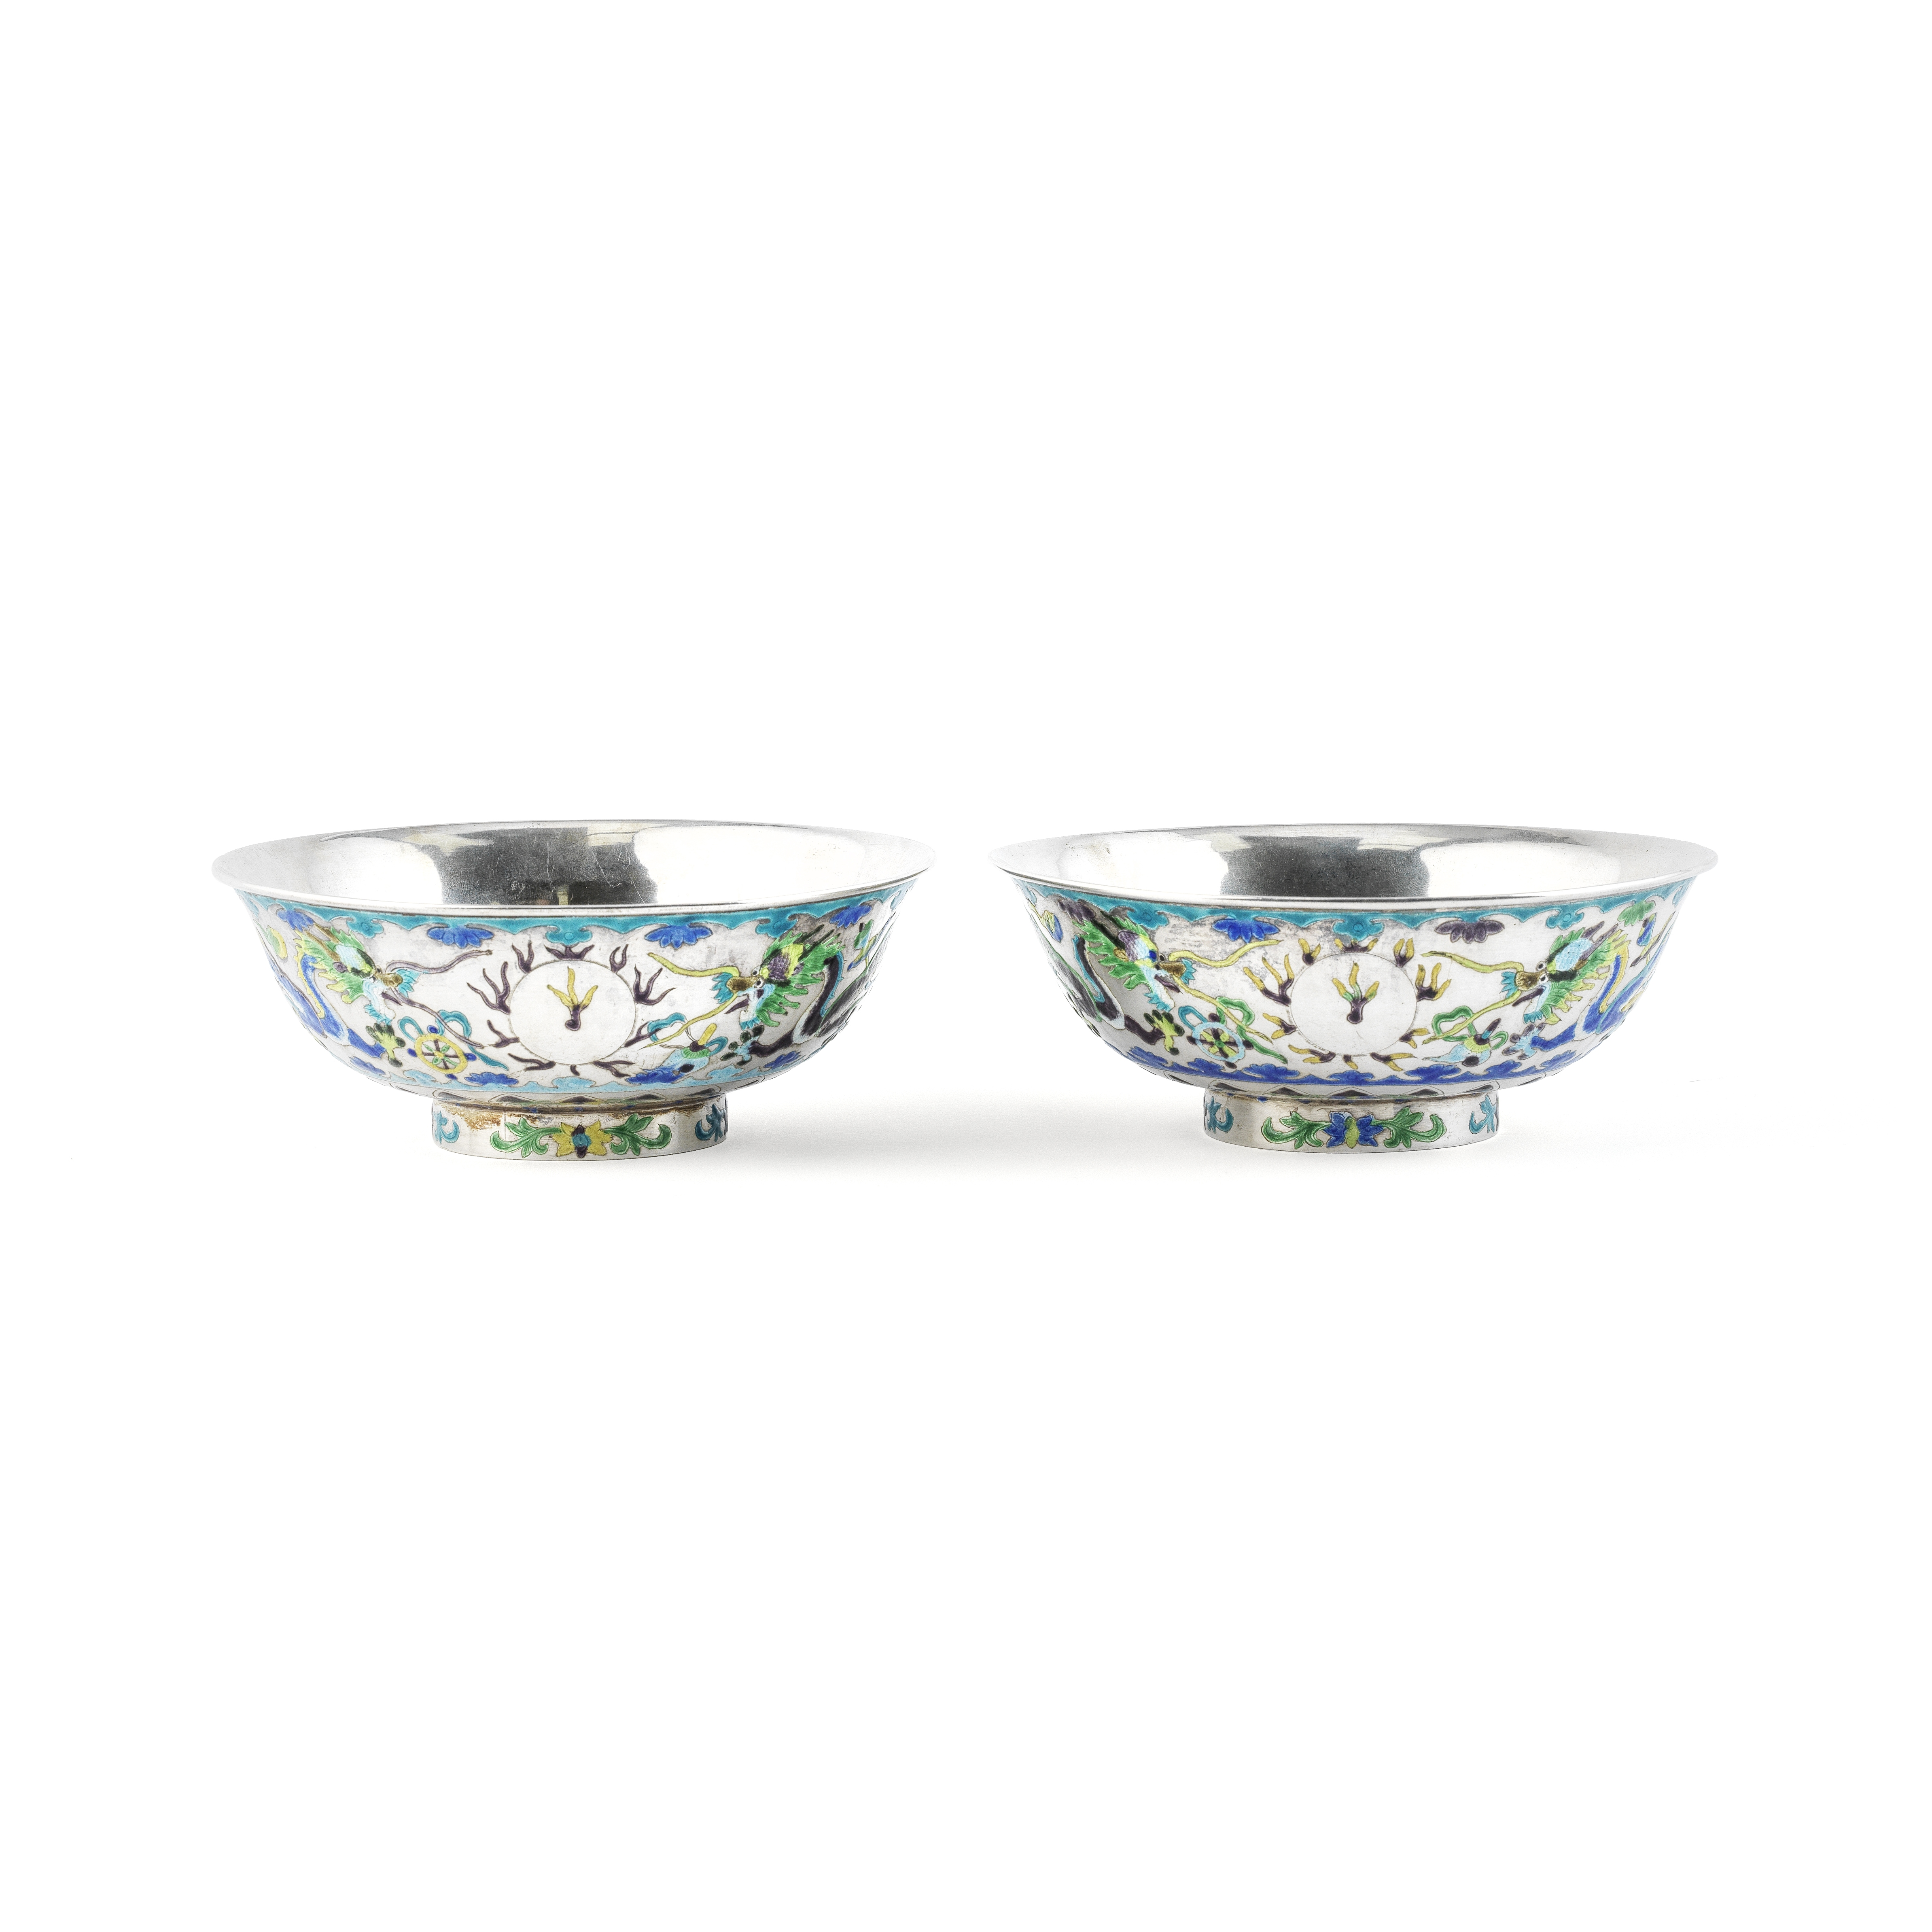 A PAIR OF ENAMELLED SILVER BOWLS 20th century (2)